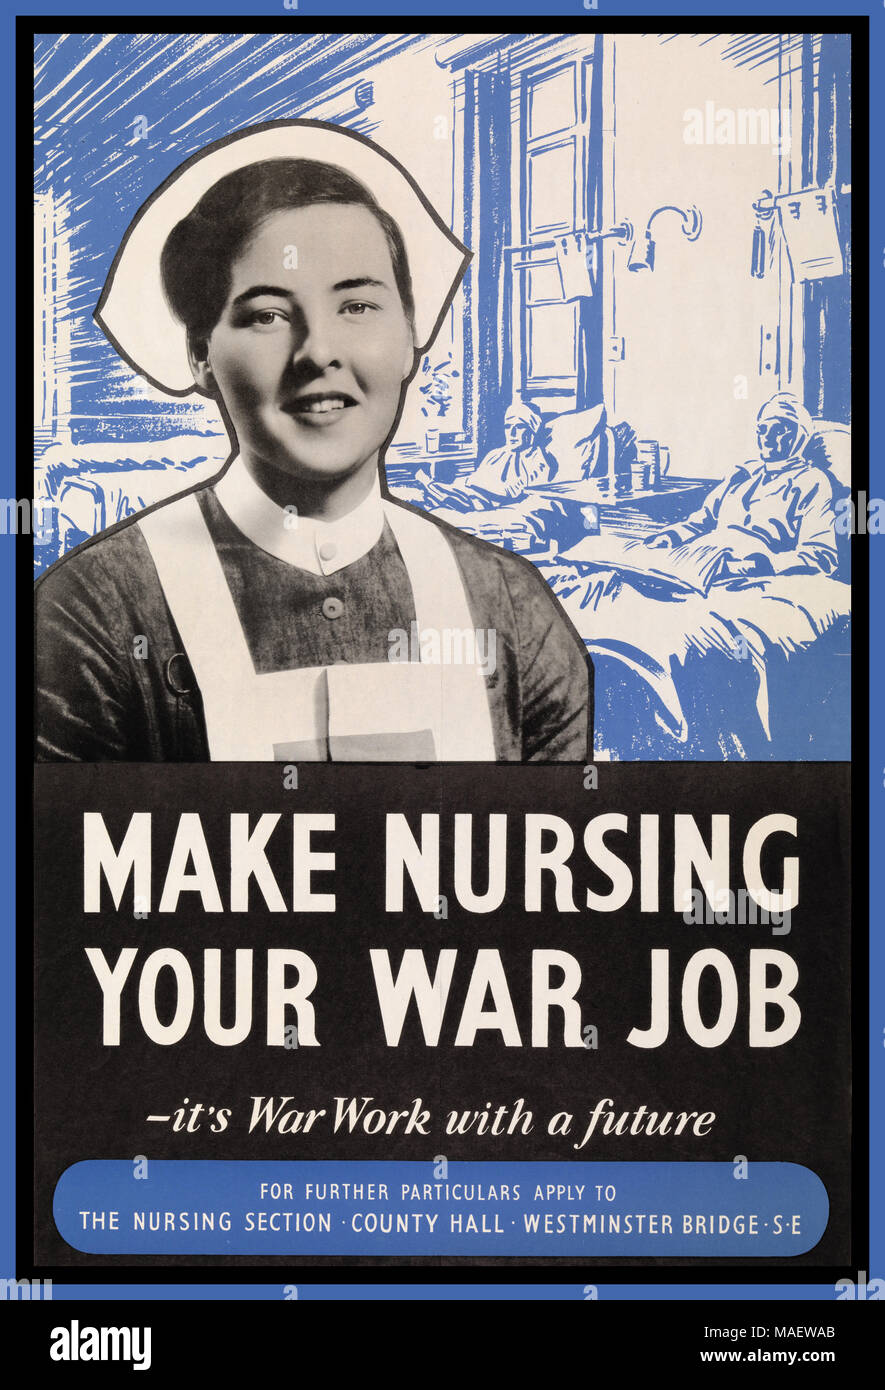 """1930's Vintage UK WW2 Recruitment poster nurse smiling In the background is a drawing of a hospital ward with two wounded soldiers lying in bed. """"MAKE NURSING YOUR WAR JOB -it's War Work with a future FOR FURTHER PARTICULARS APPLY TO THE NURSING SECTION. COUNTY HALL. WESTMINSTER BRIDGE. S.E""""   1939 - Stock Image"""